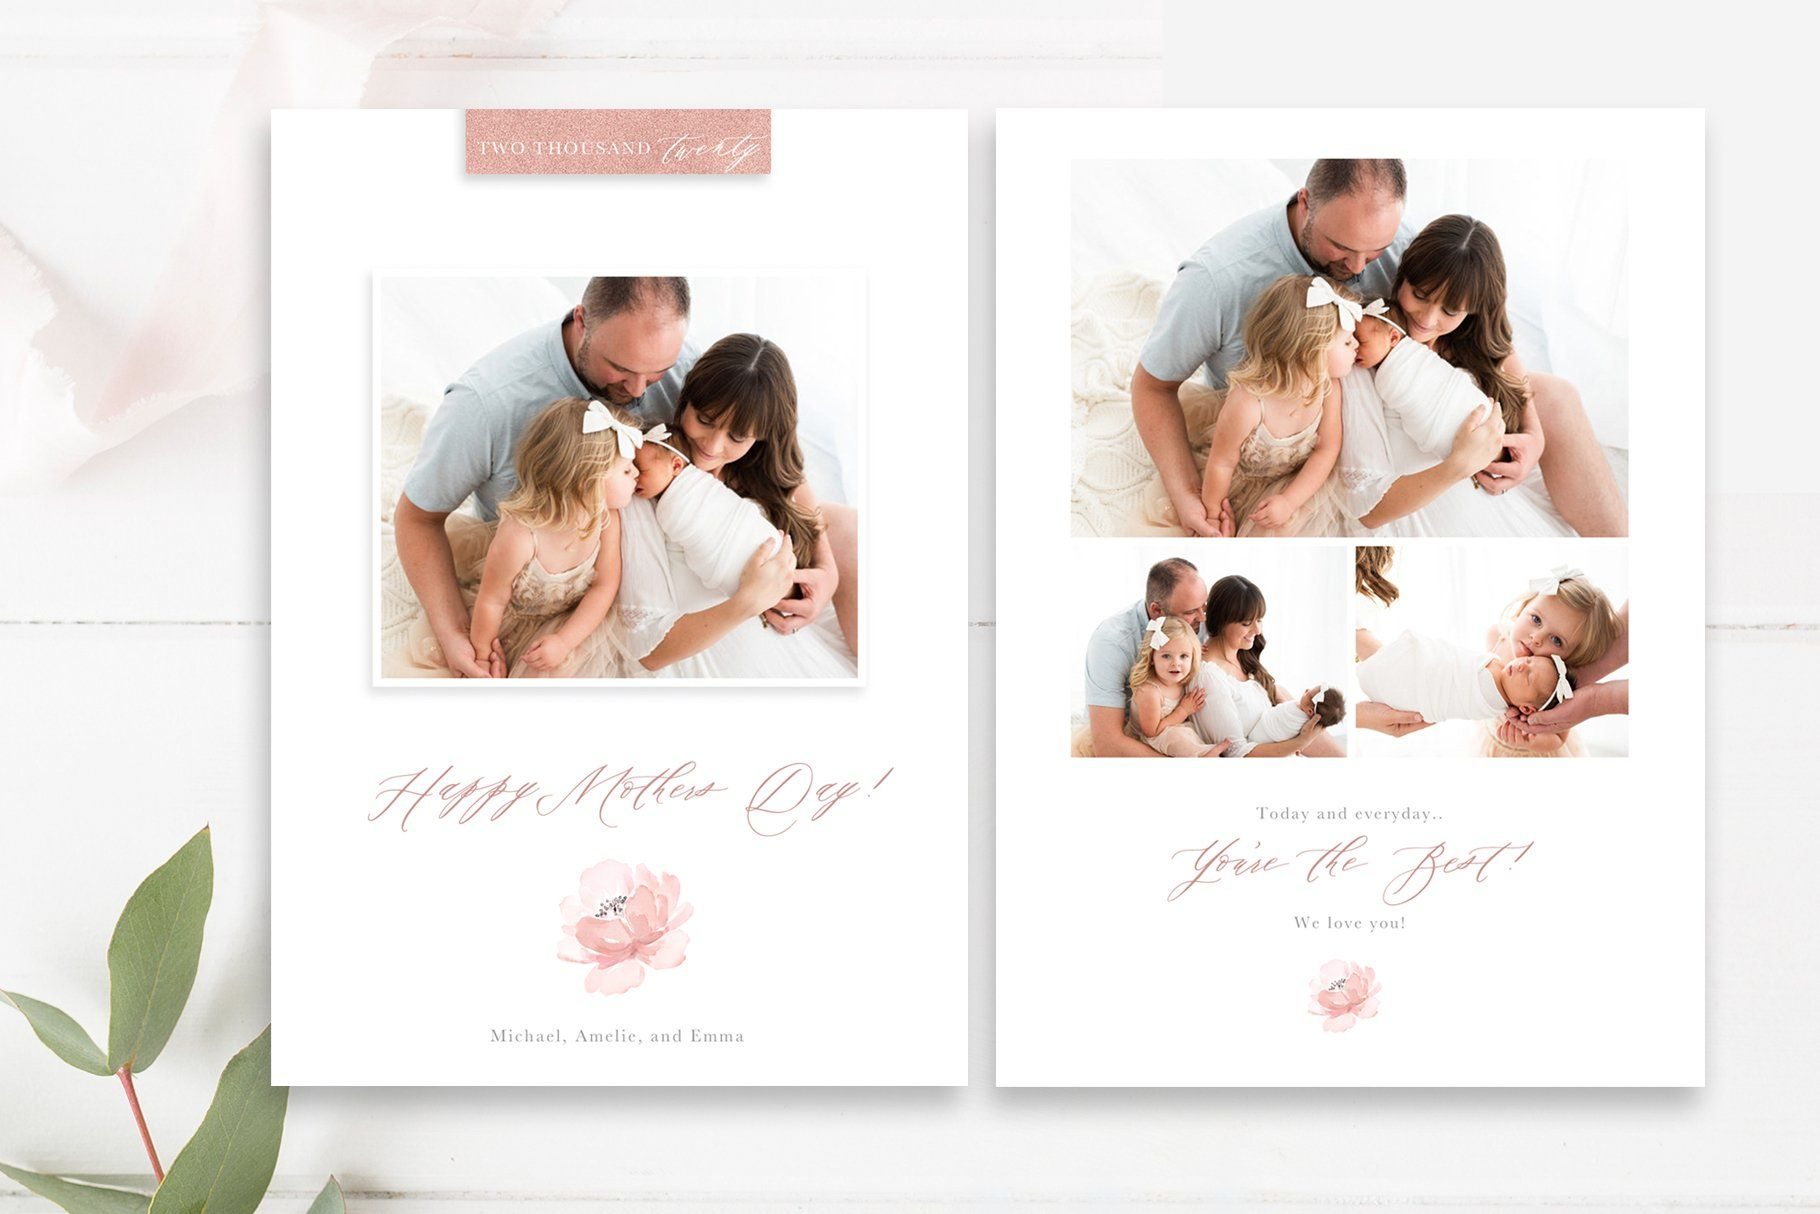 Mothers Day Photo Card Psd Photo Card Template Mother S Day Photos Photoshop Template Design